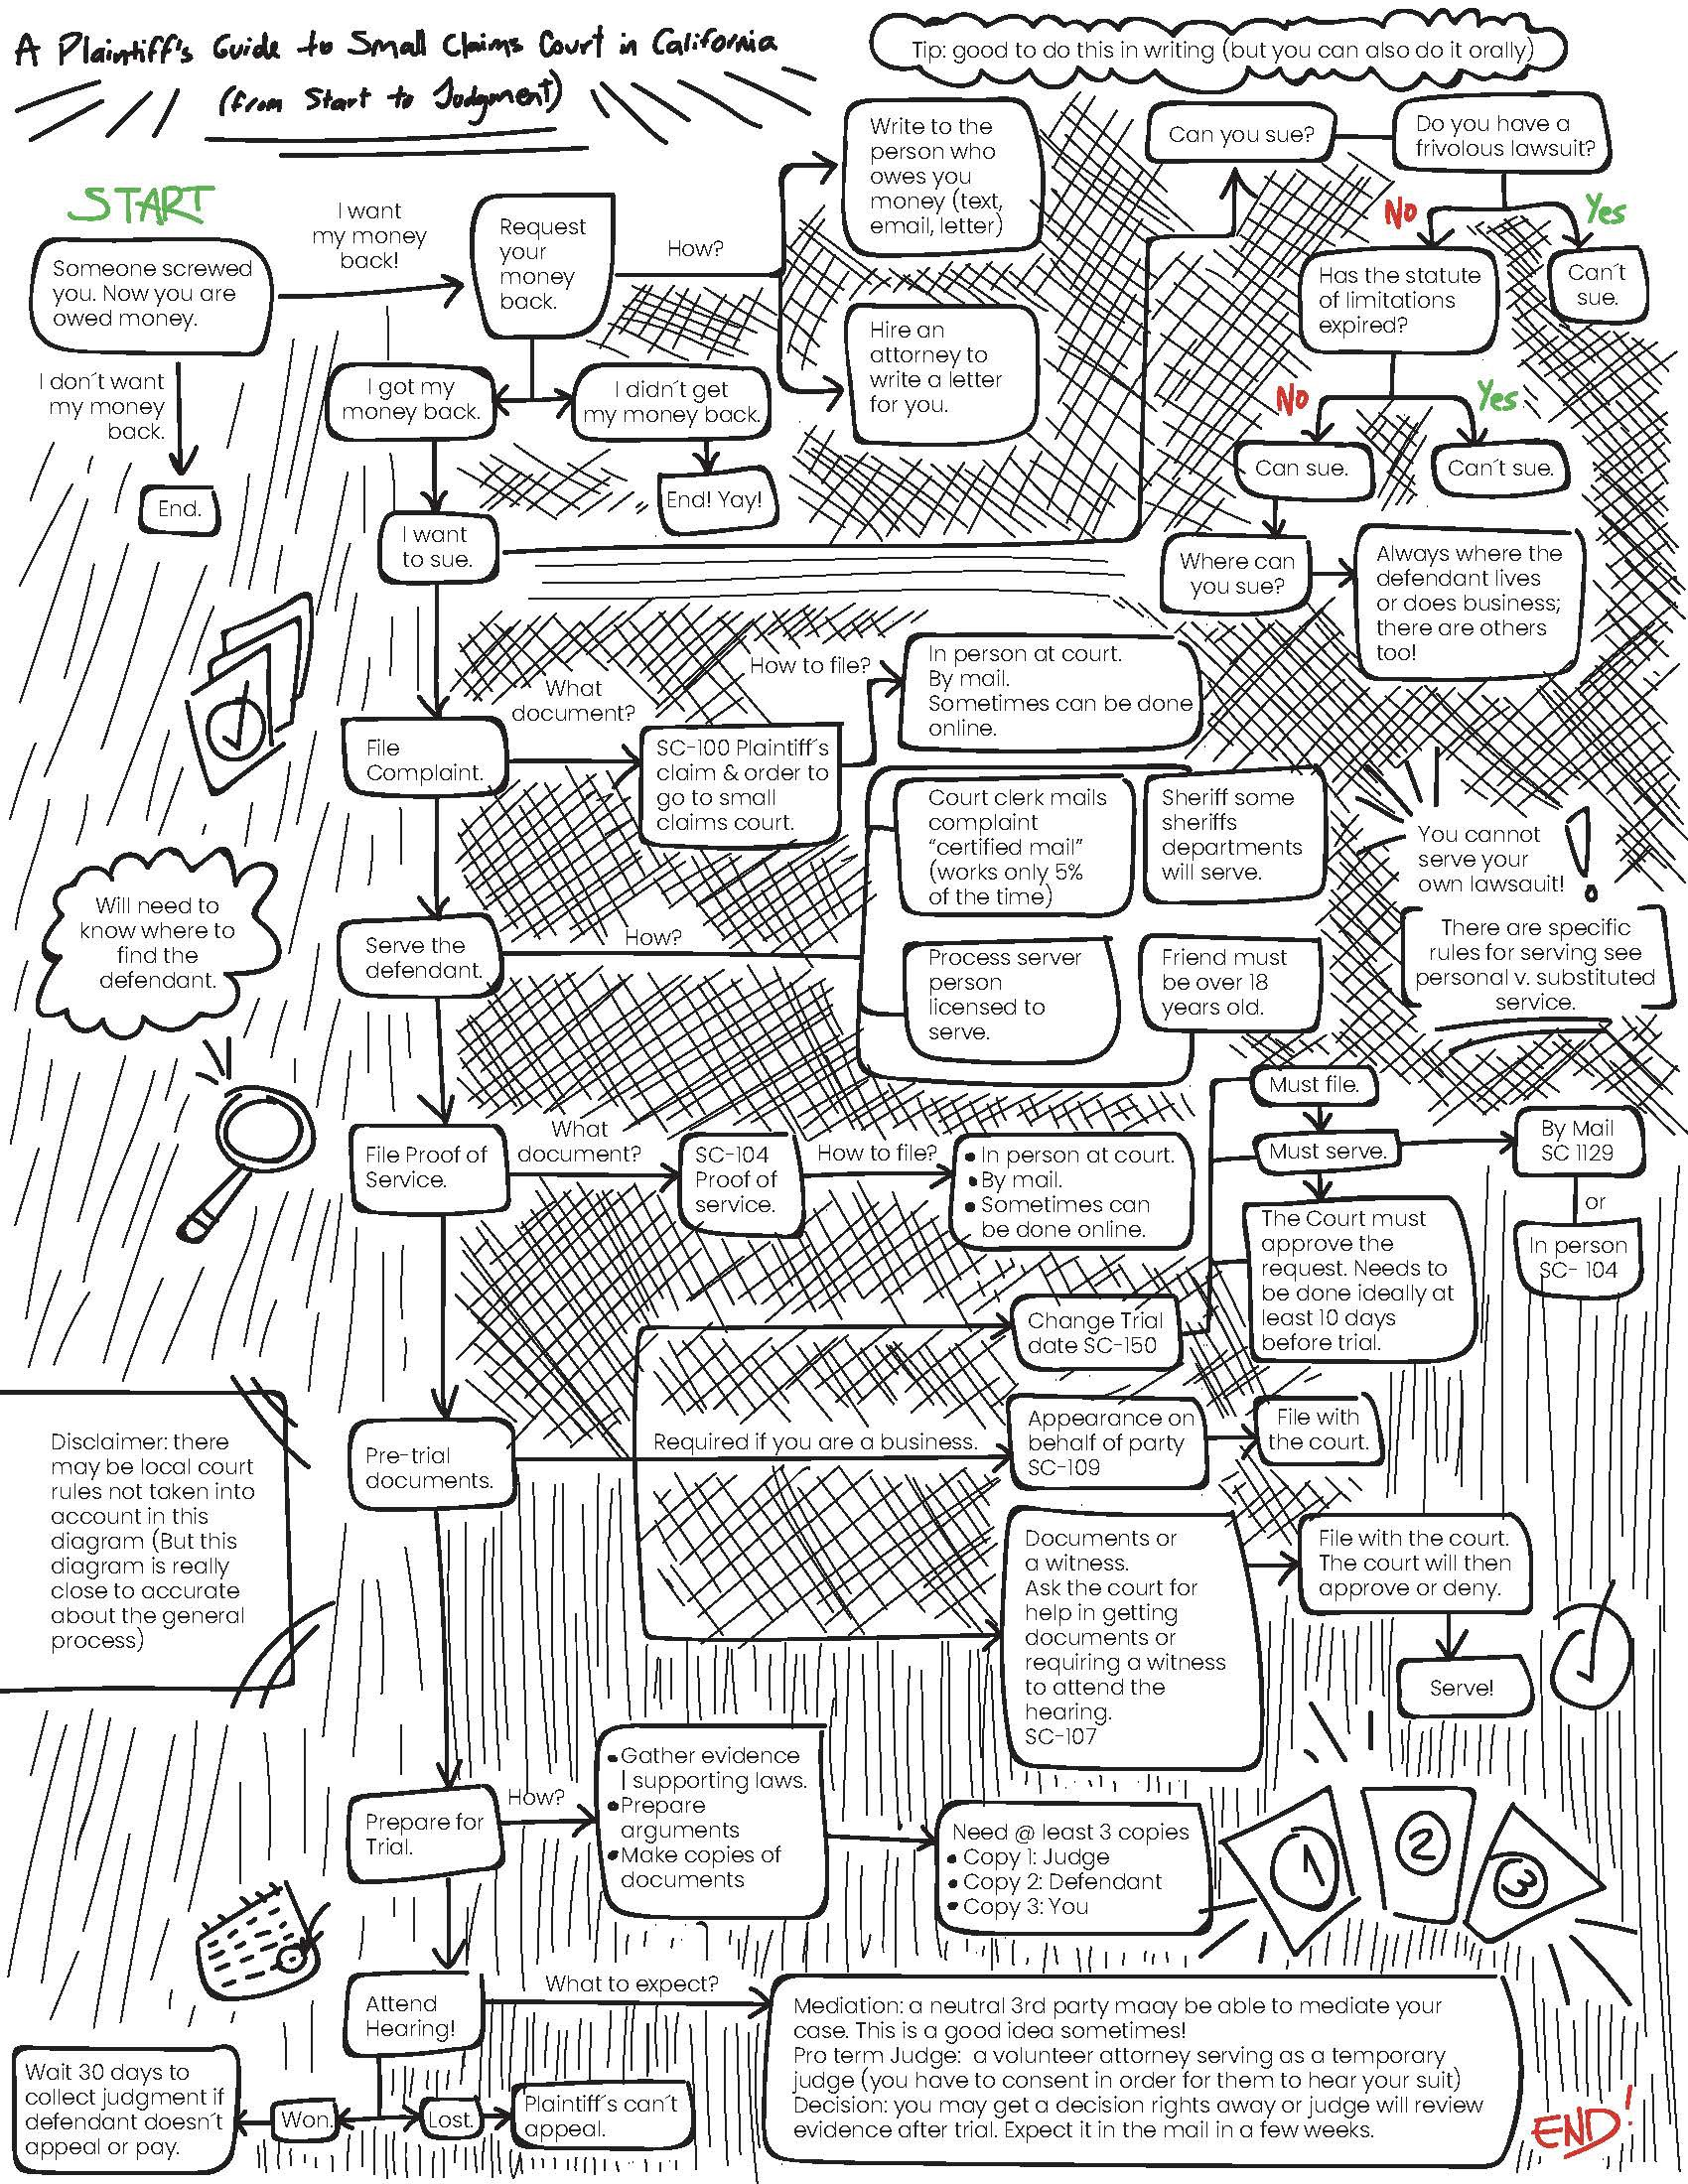 A black and white flow chart showing a plaintiff's guide to small claims court in California.